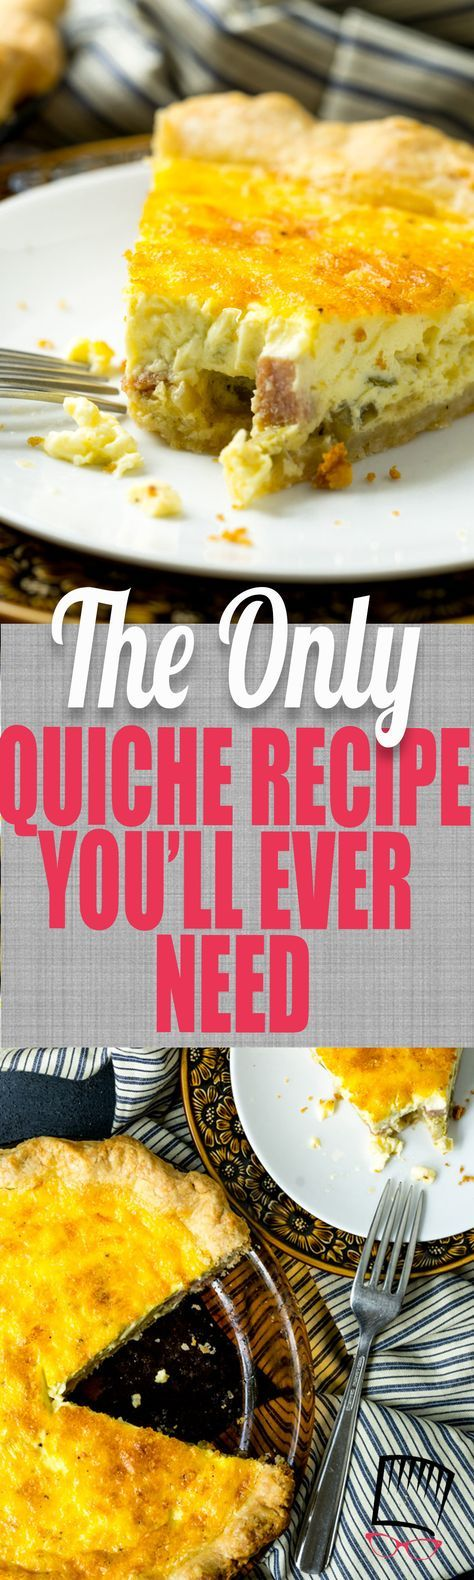 This is the quiche recipe of all quiche recipes and can be tailored to your taste by switching out the mix-ins. BUT, it's the egg custard that is the shining star here-- creamy, dreamy, and delicious! #calripeolives @CalRipeOlives #sponsored